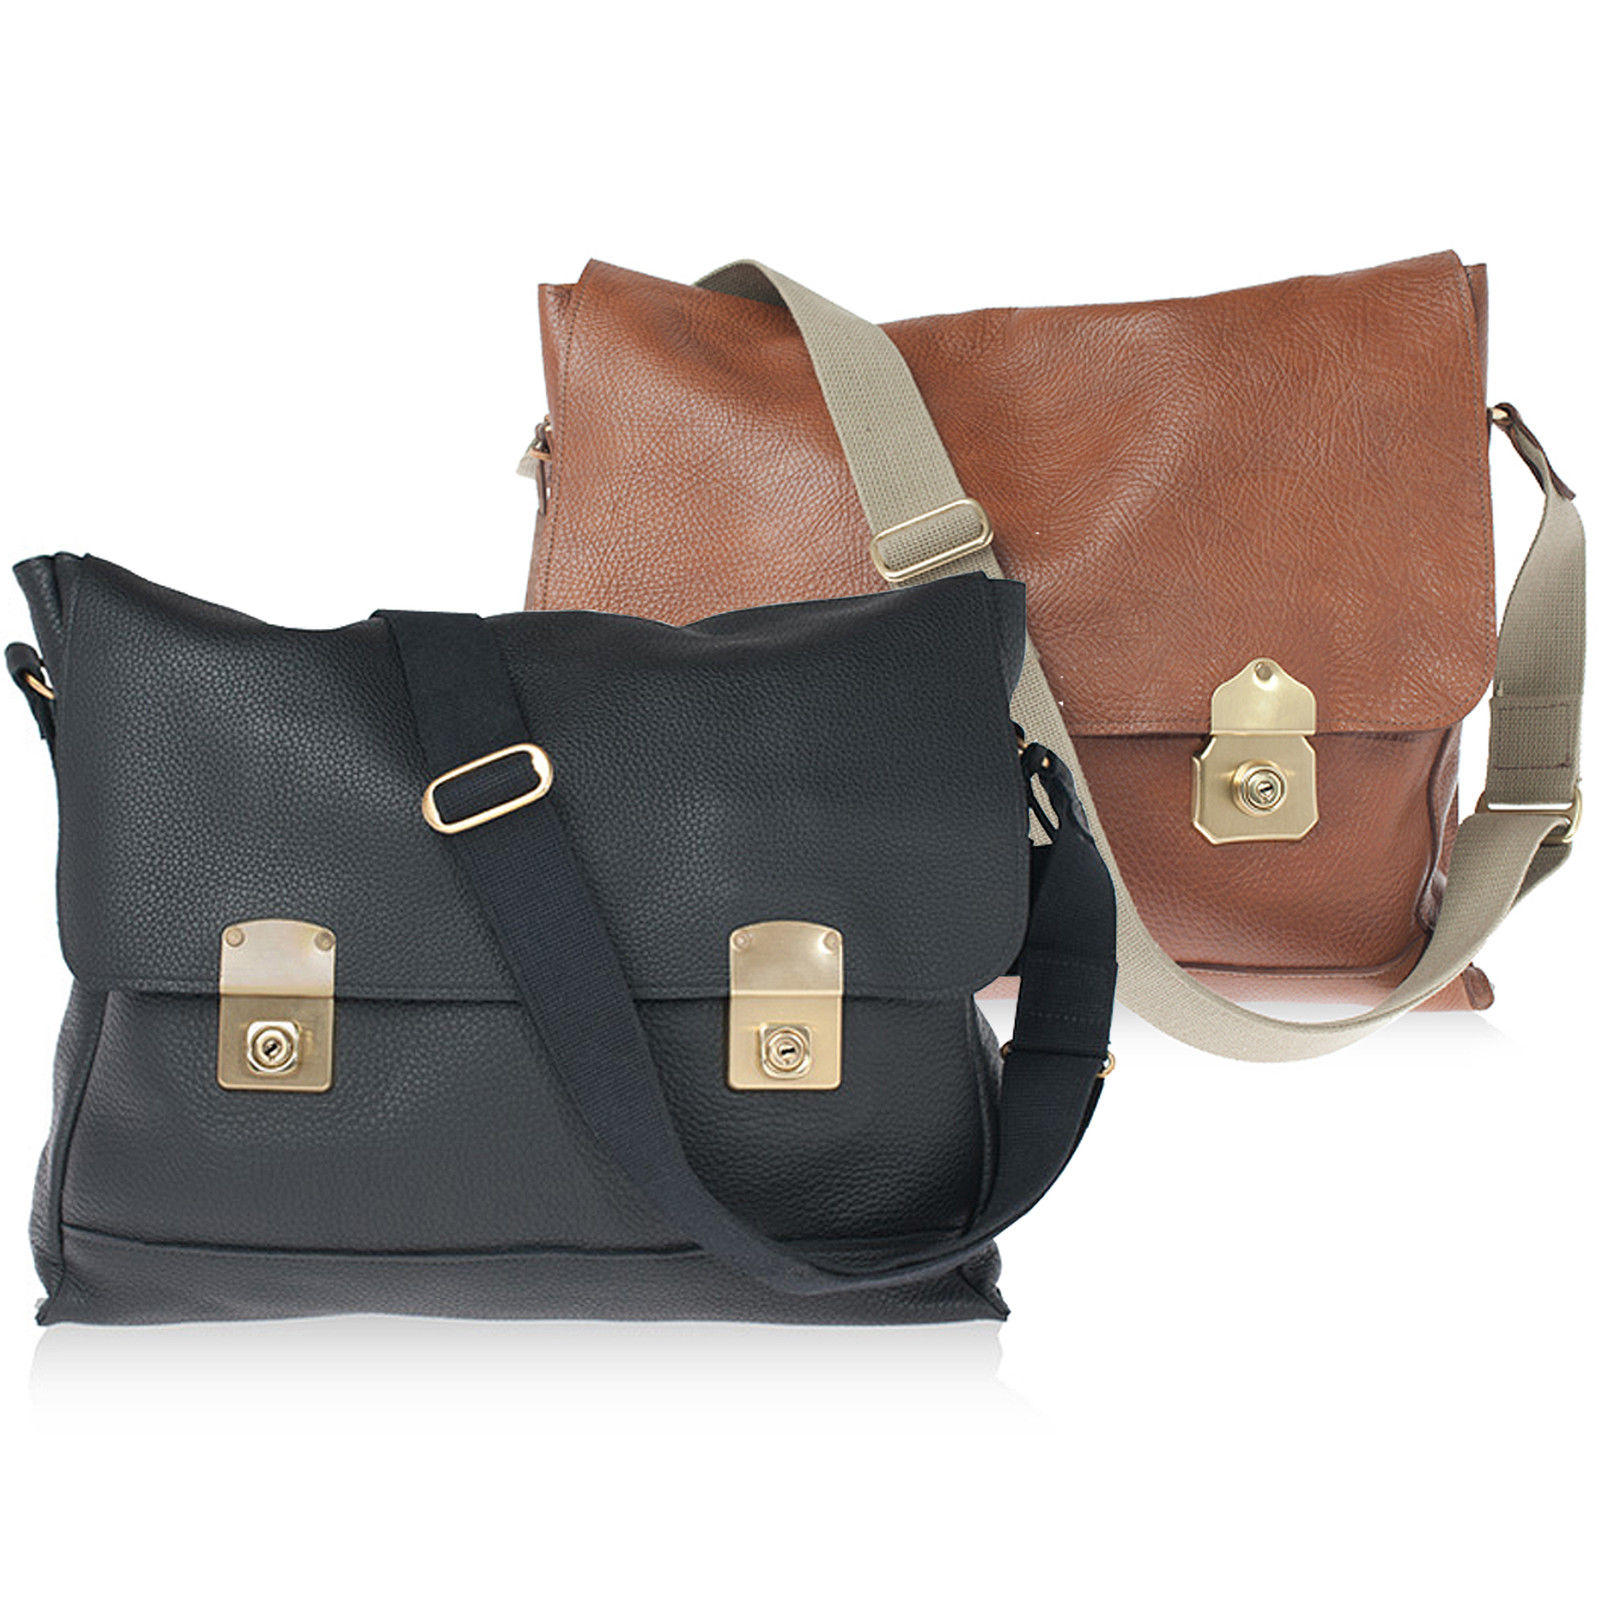 ISAMBARD Clifton Satchel In Soft Natural Leather - Tan or Black